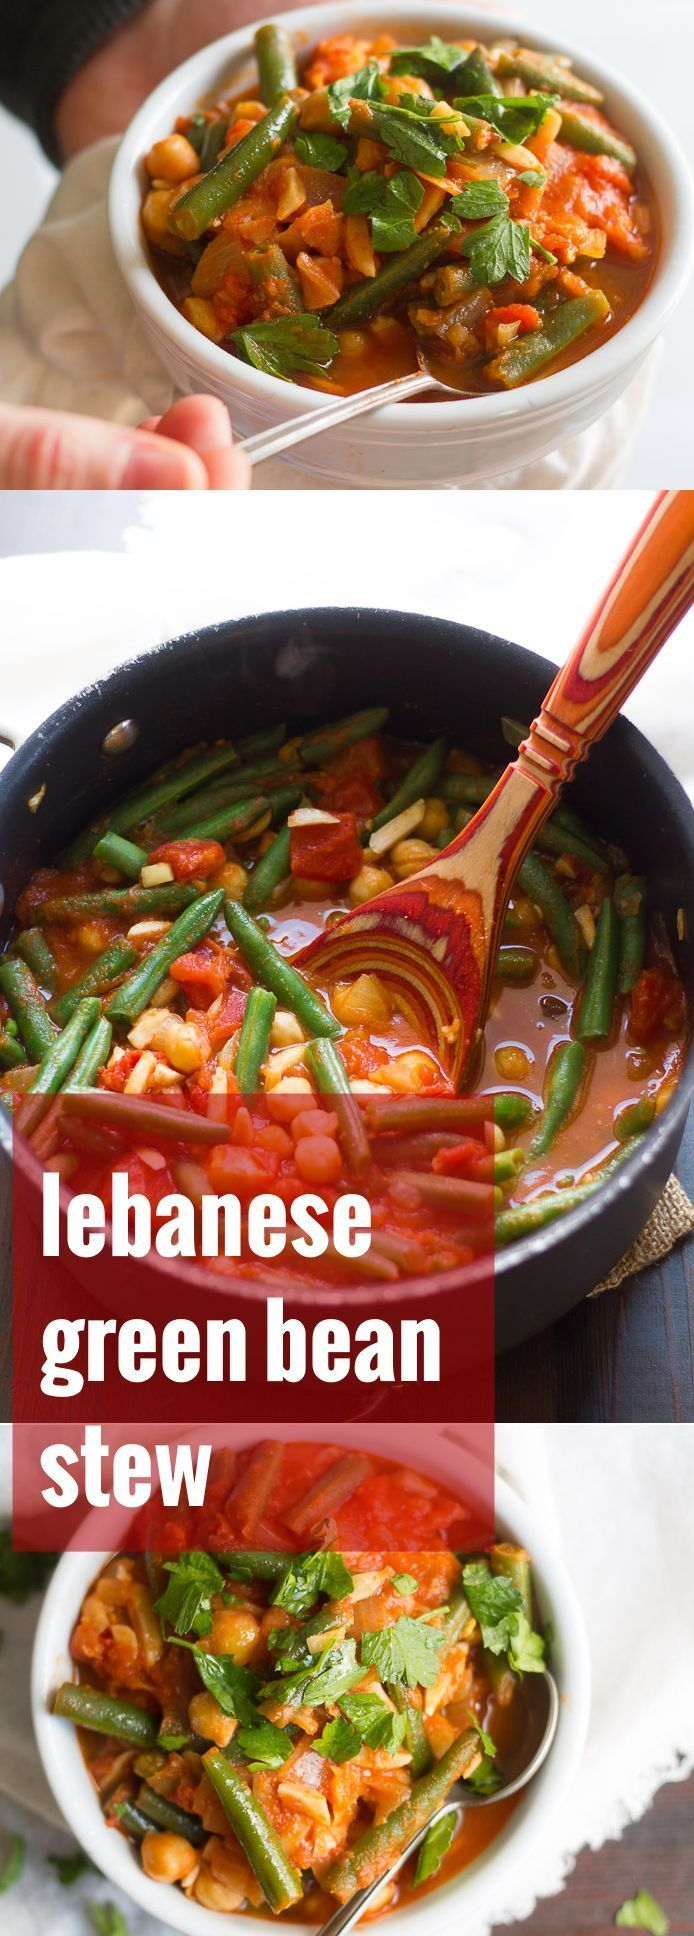 Green beans, tomatoes, almonds and chickpeas are simmered up in a lightly spiced tomato base to make this cozy and flavorful Lebabese green bean stew.